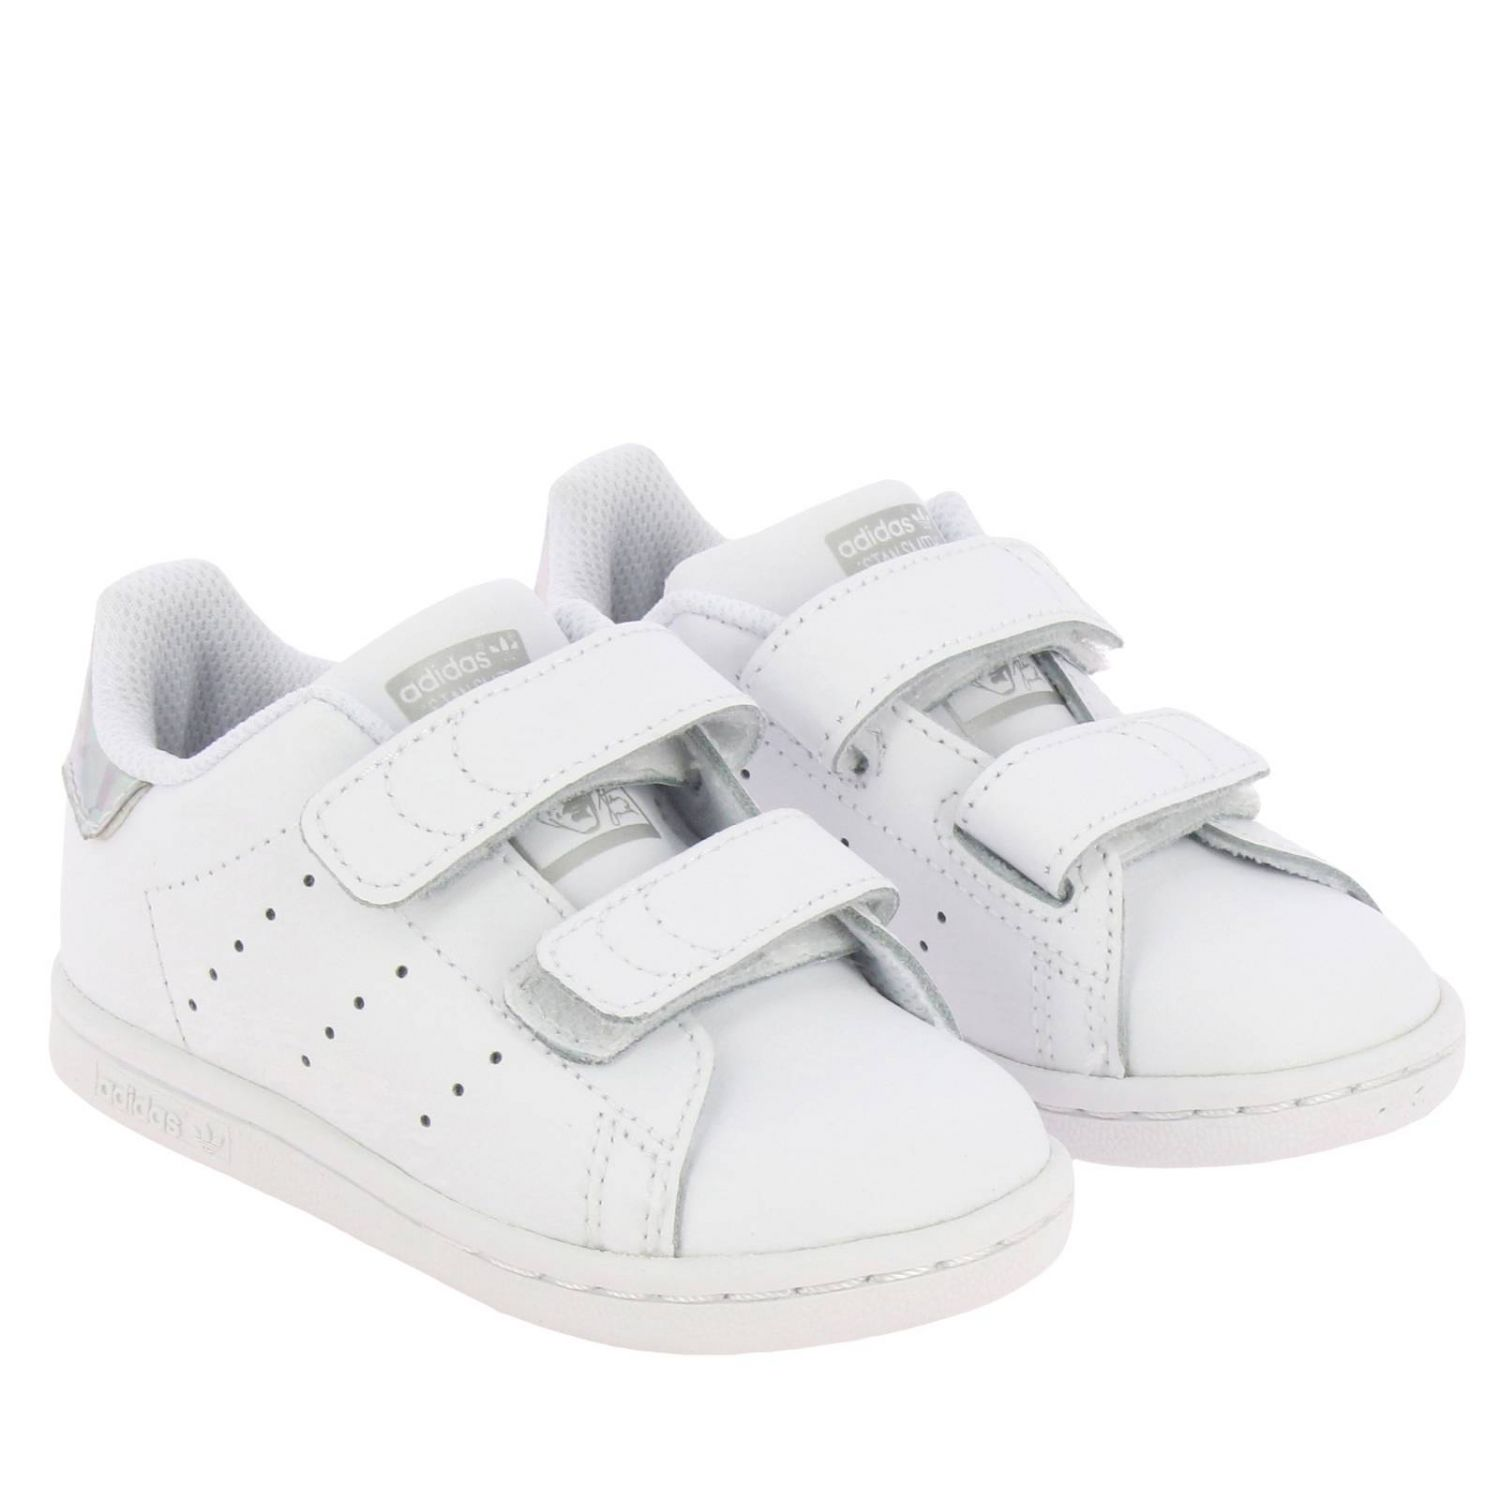 Shoes Adidas Originals: Stan Smith Adidas Originals Sneakers in smooth leather with mirrored heel white 2